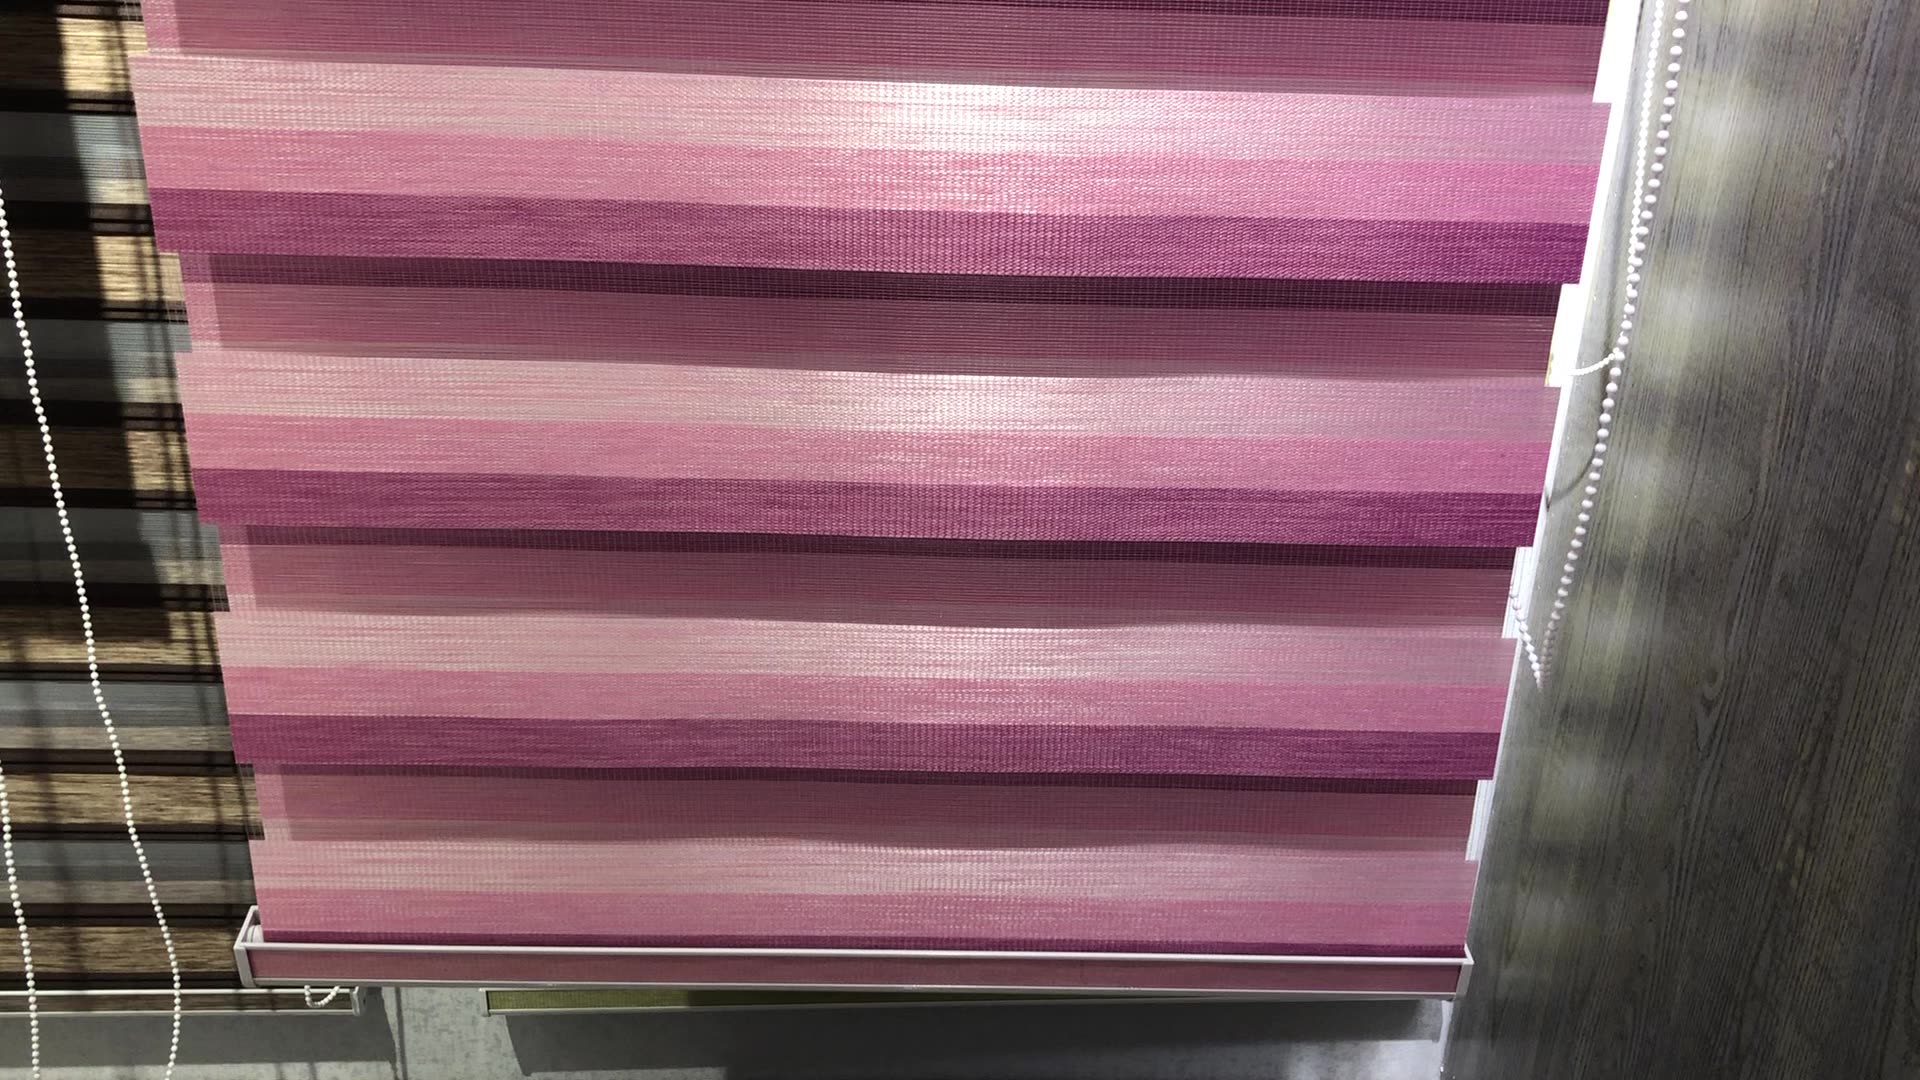 Custom Made Window Curtain Wholesale Office And Home Light Control Fabric Zebra Roller Blinds Blackout